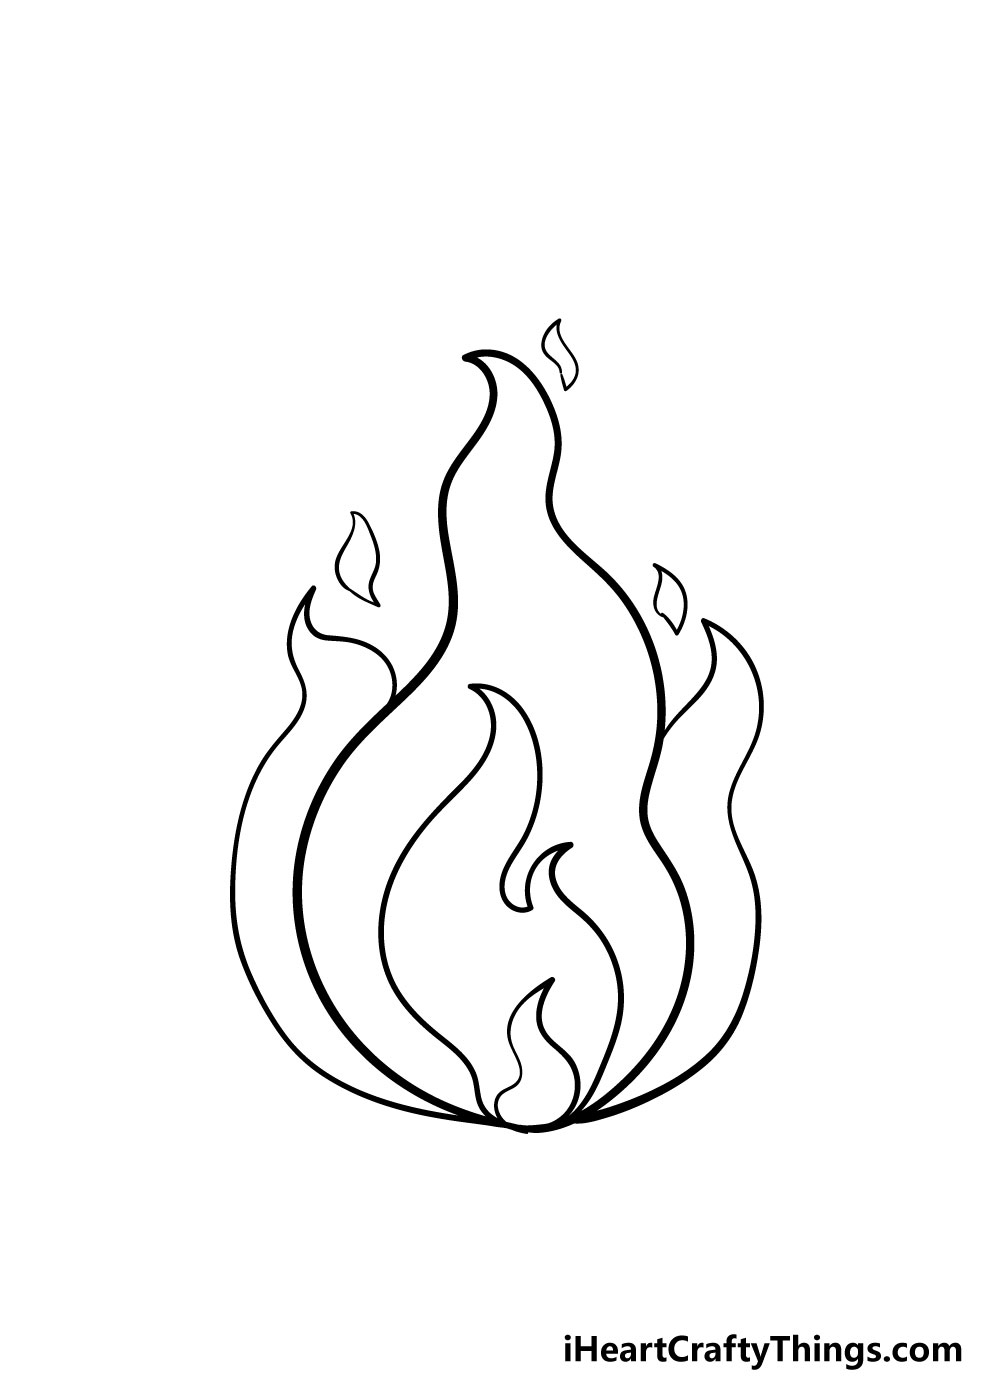 fire drawing step 5